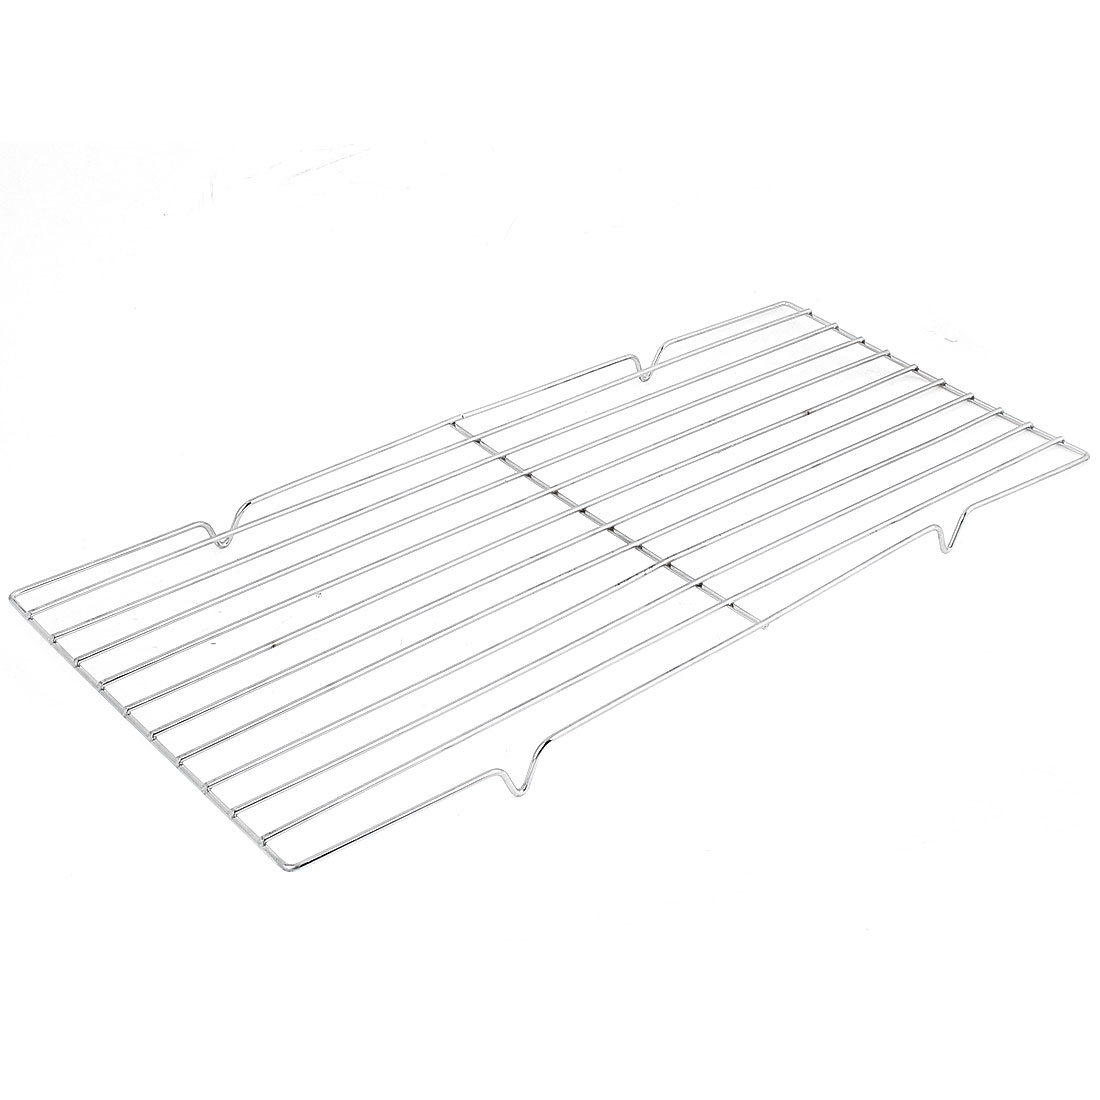 Outdoor Rectangle Metal Barbecue Grill Ware Netting Shelf 49cm x 22cm